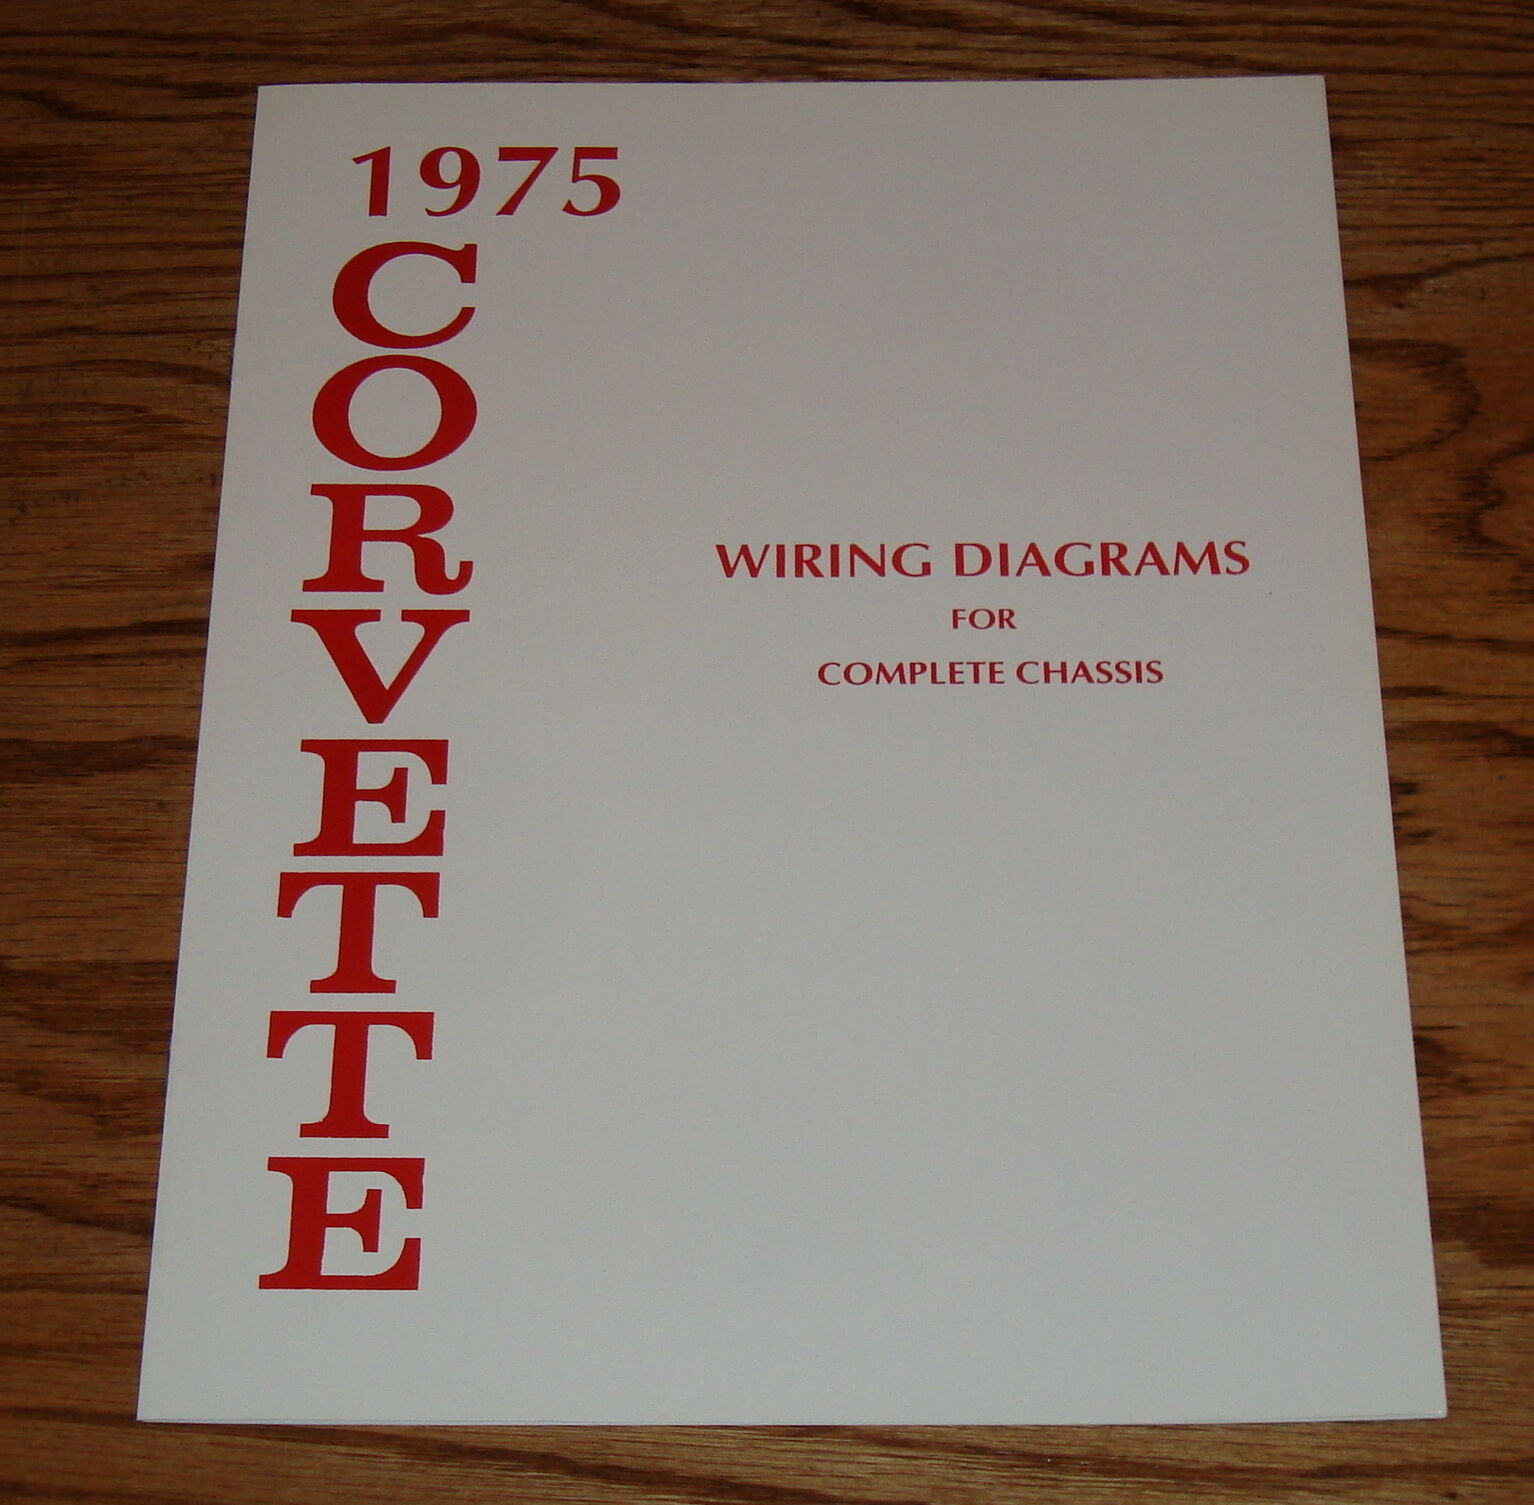 1975 Chevrolet Corvette Wiring Diagram Manual For Complete Chassis 75 Chevy 1 Of 1only 2 Available